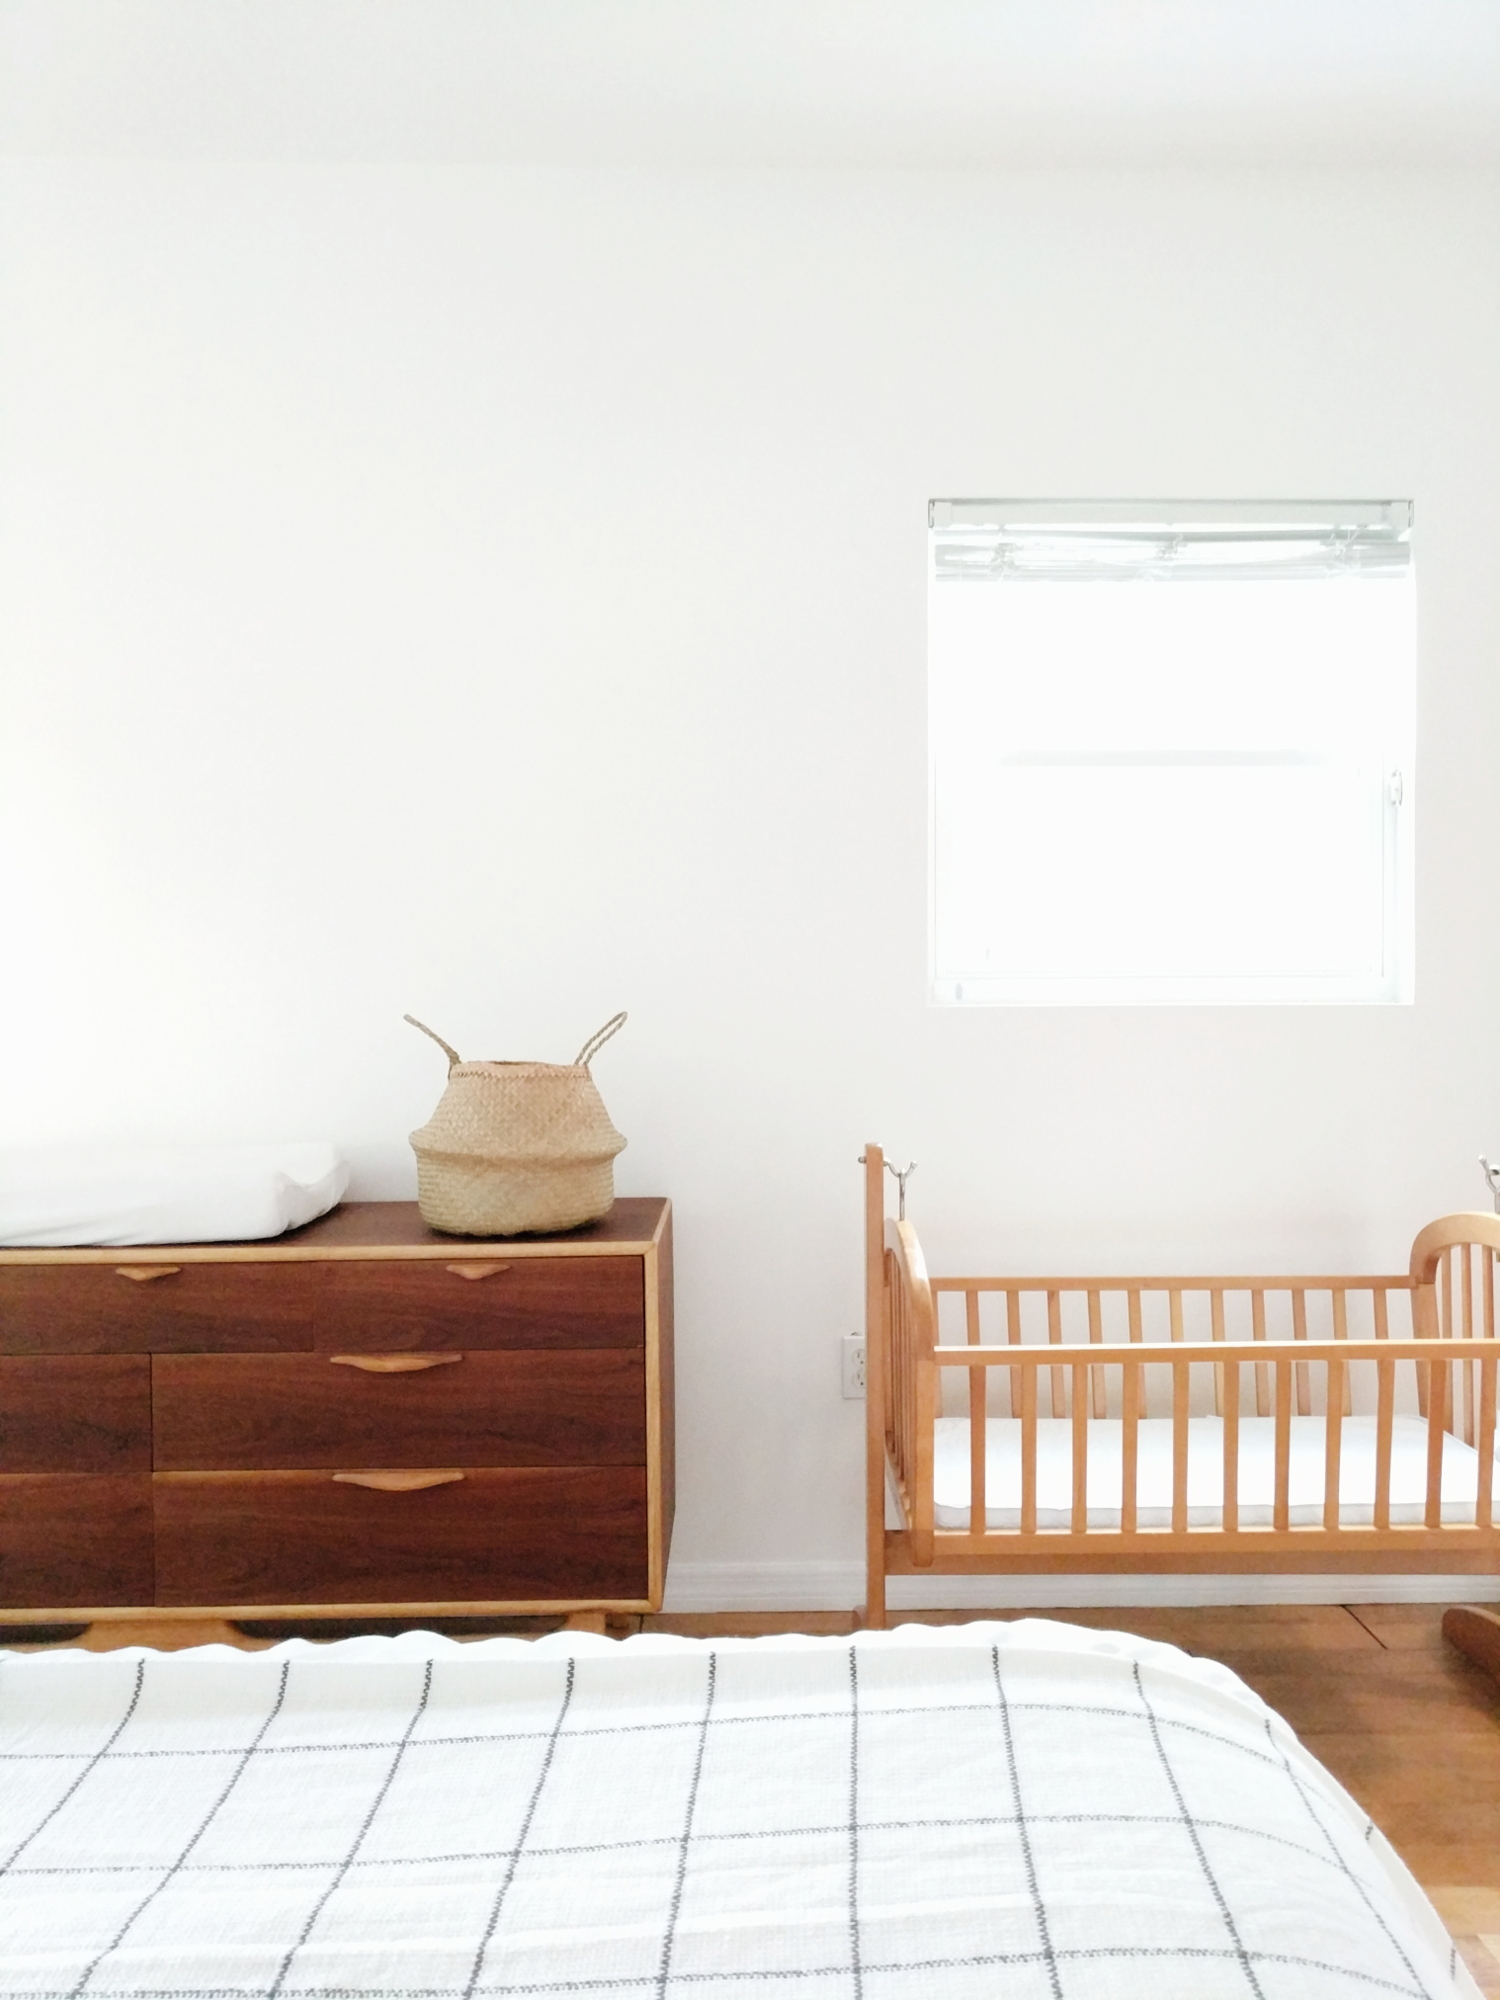 cradle, mid century changing table, nursery, bedroom